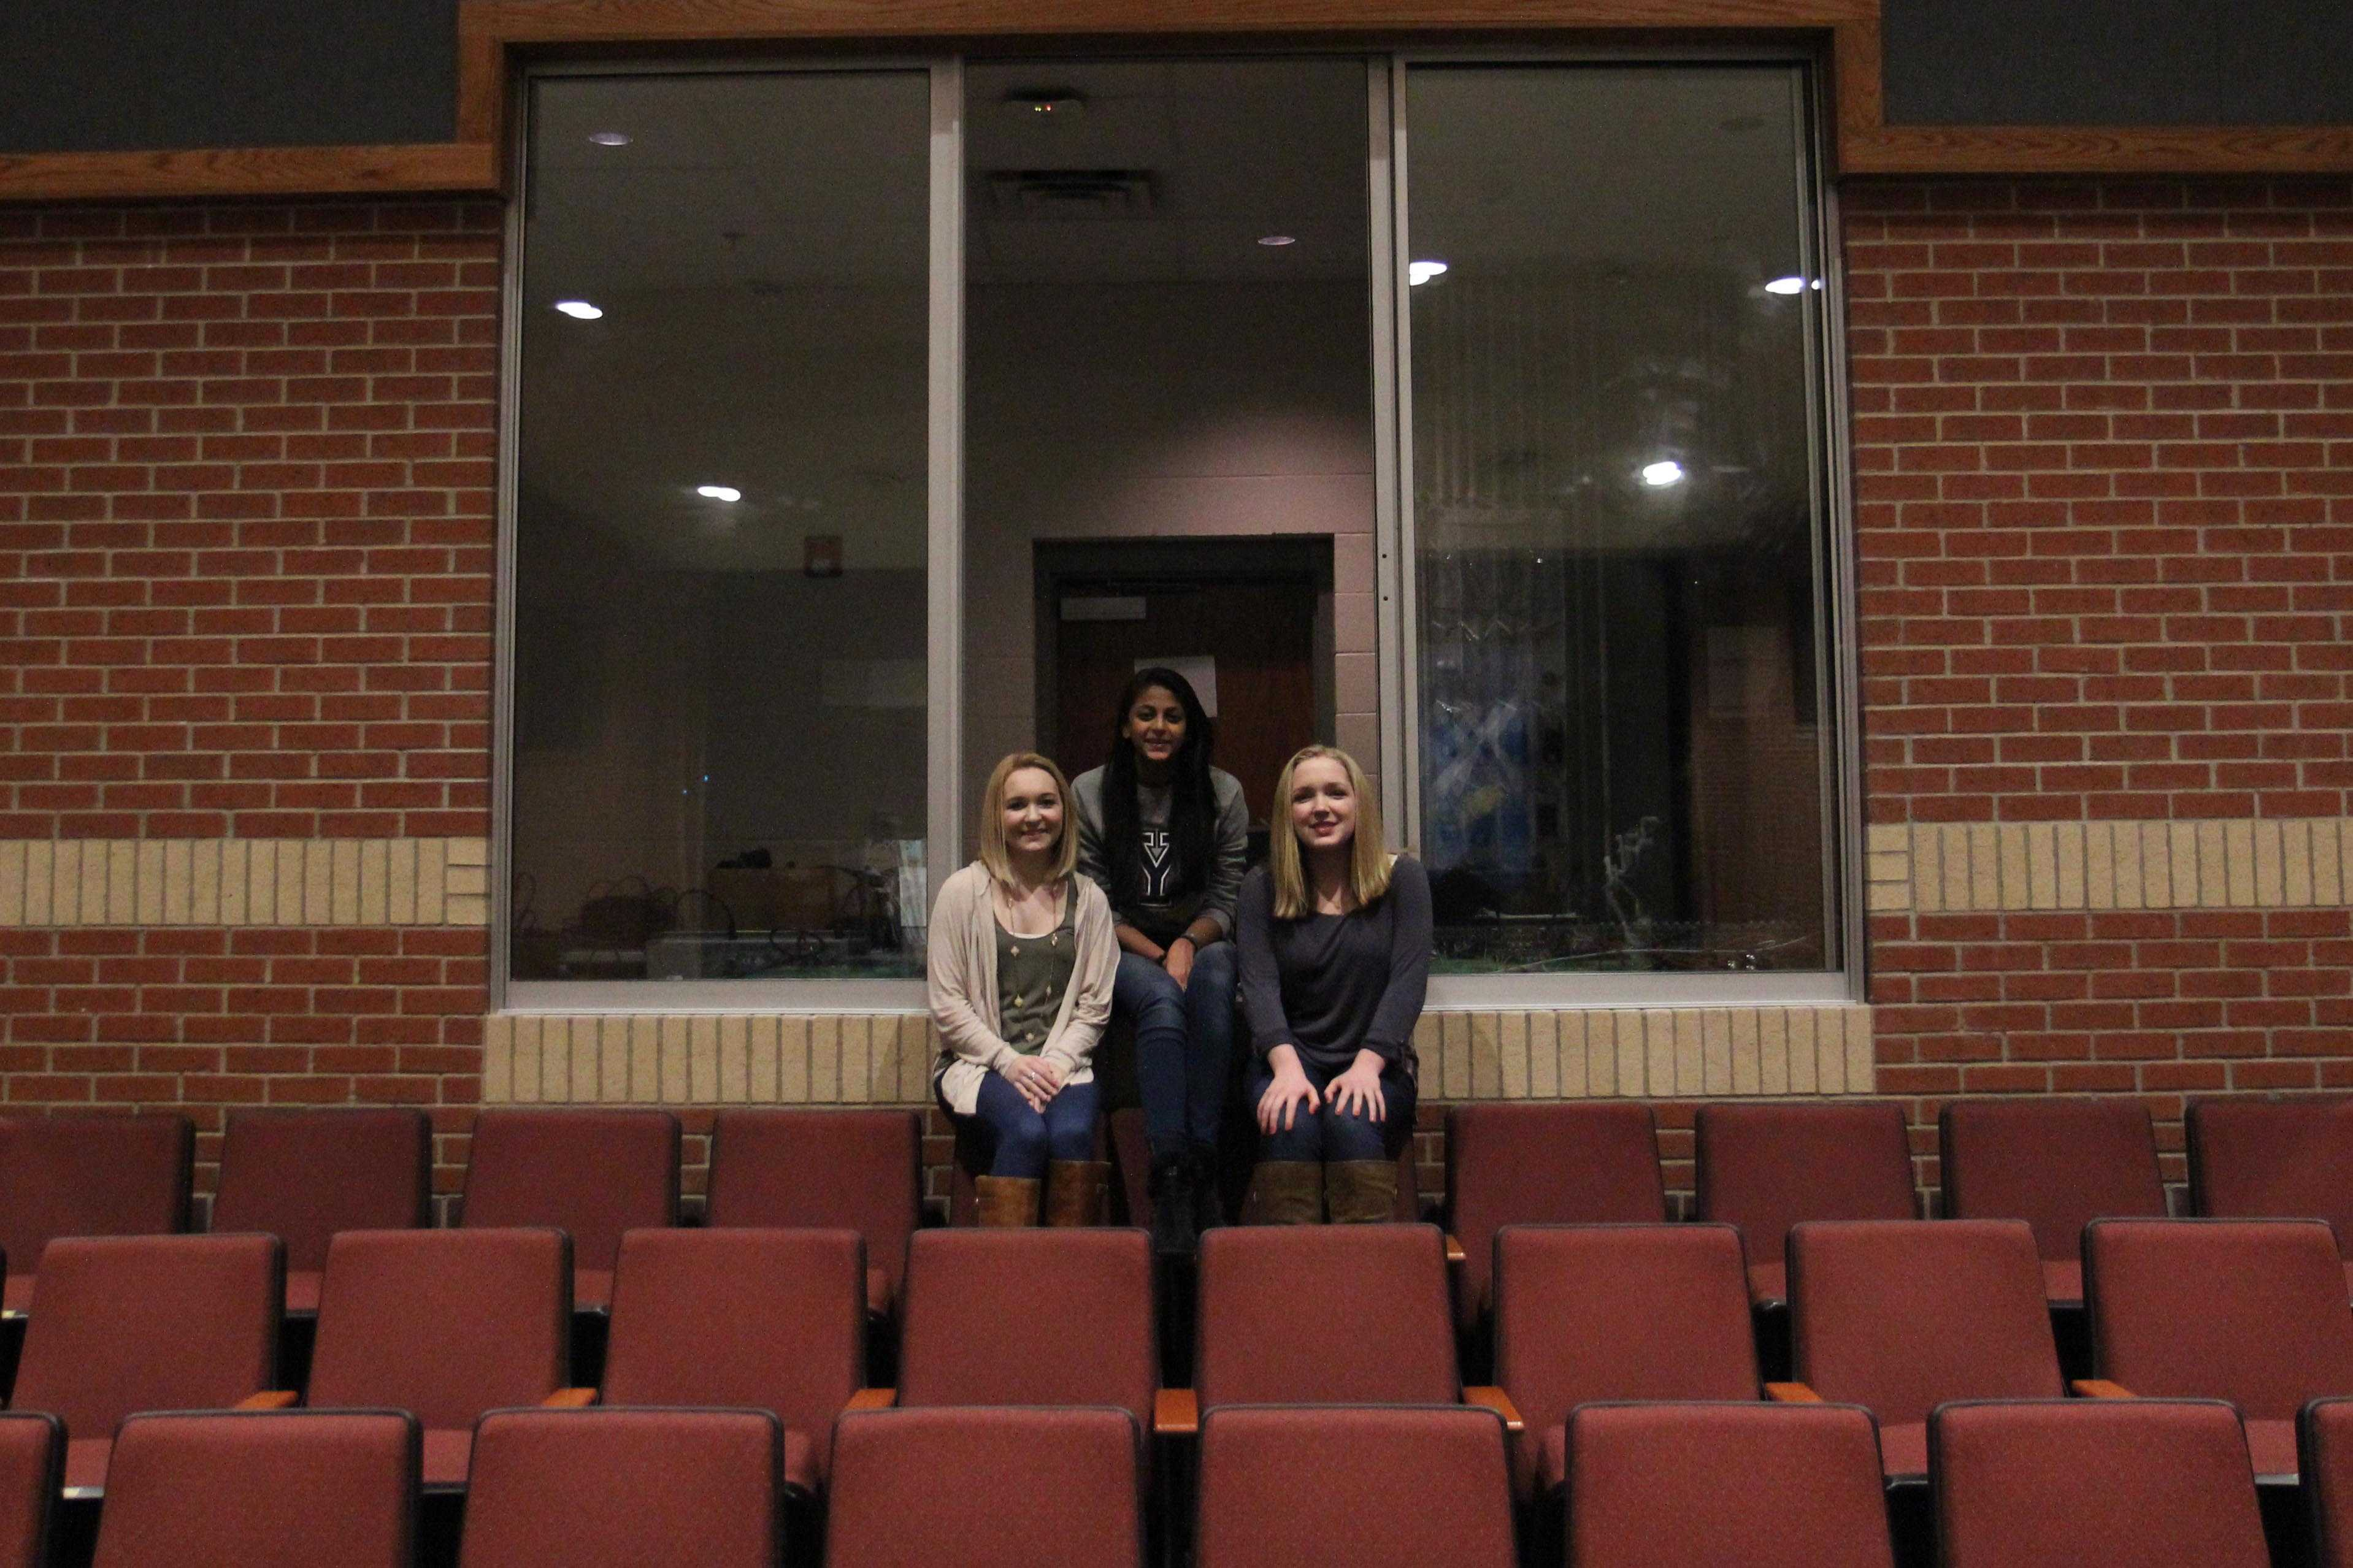 Three stage managers from recent shows, sophomore Mason Taylor Long, senior Sonali Mehta, and sophomore Lauren Latour, sit on the edge of the sound and light booth looking towards the stage.